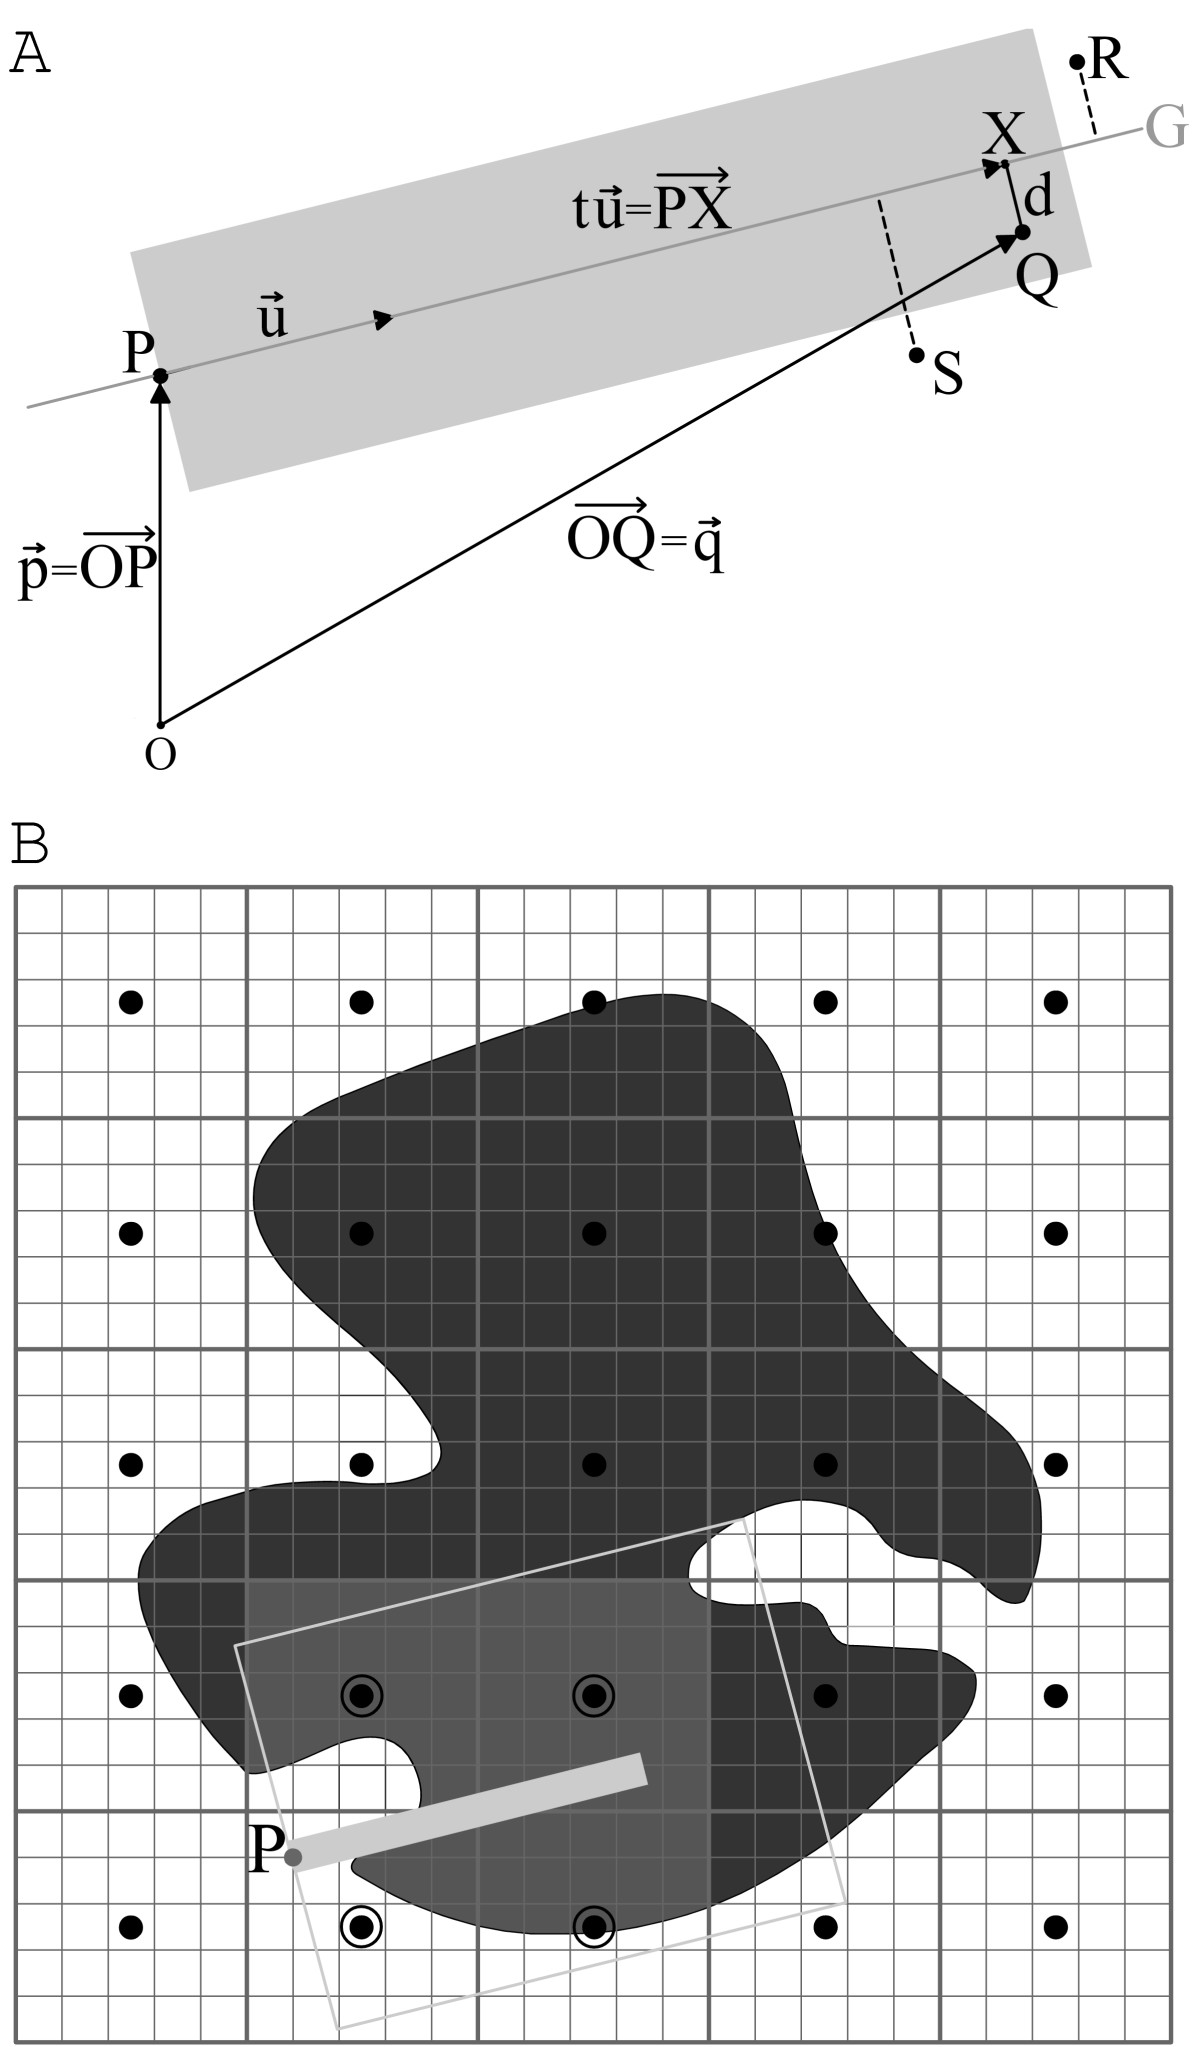 https://static-content.springer.com/image/art%3A10.1186%2F1752-153X-1-7/MediaObjects/13065_2006_Article_7_Fig7_HTML.jpg